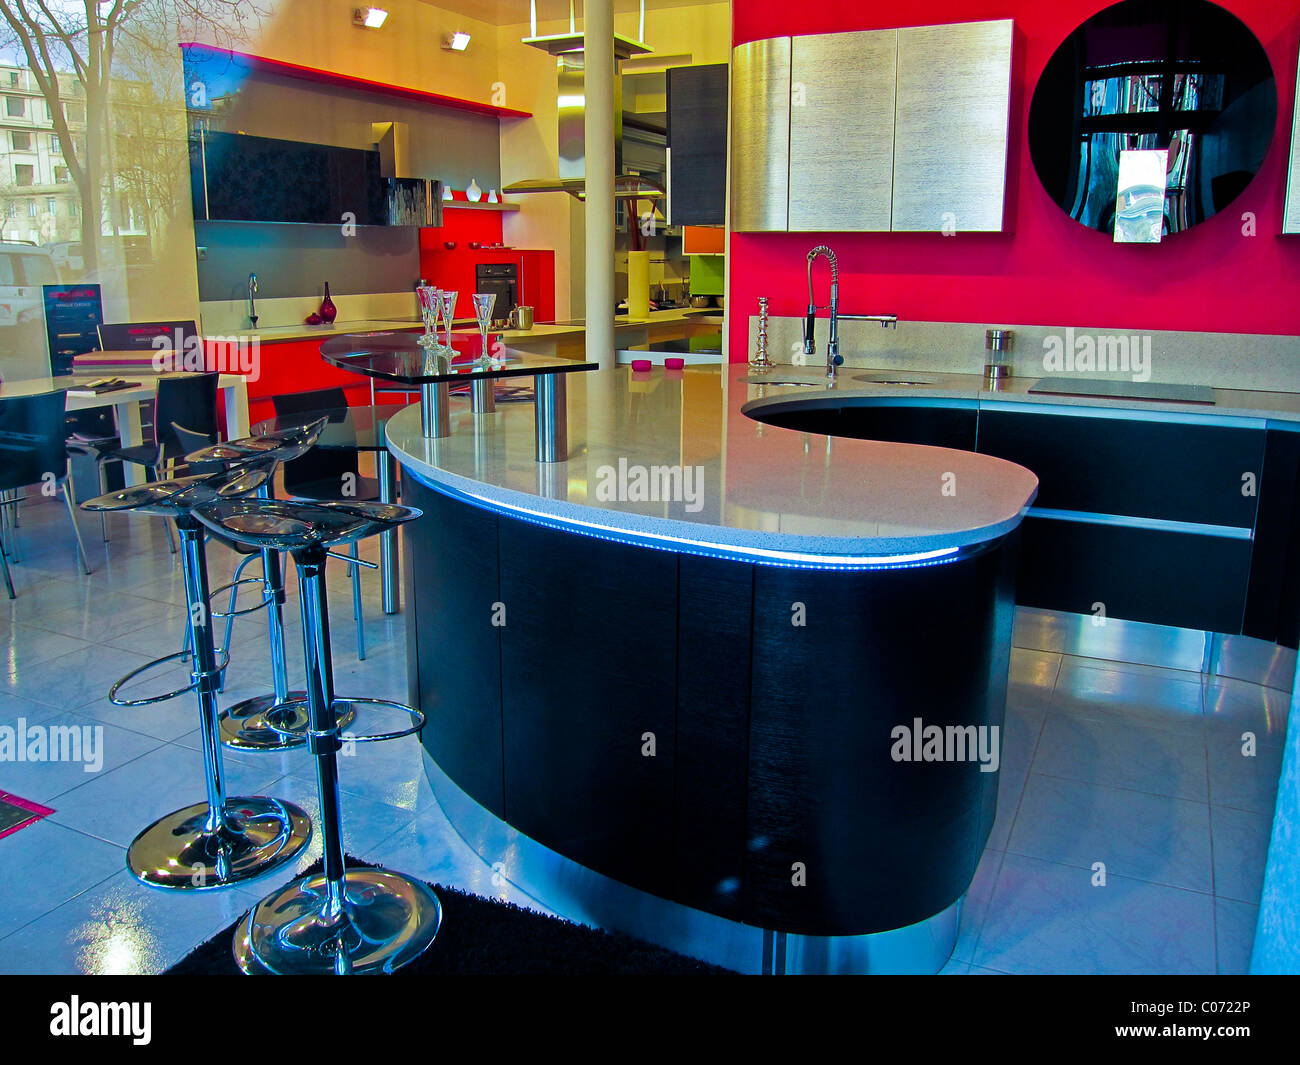 https://c8.alamy.com/comp/C0722P/paris-france-modern-kitchen-design-concept-interieur-shop-inside-displays-C0722P.jpg